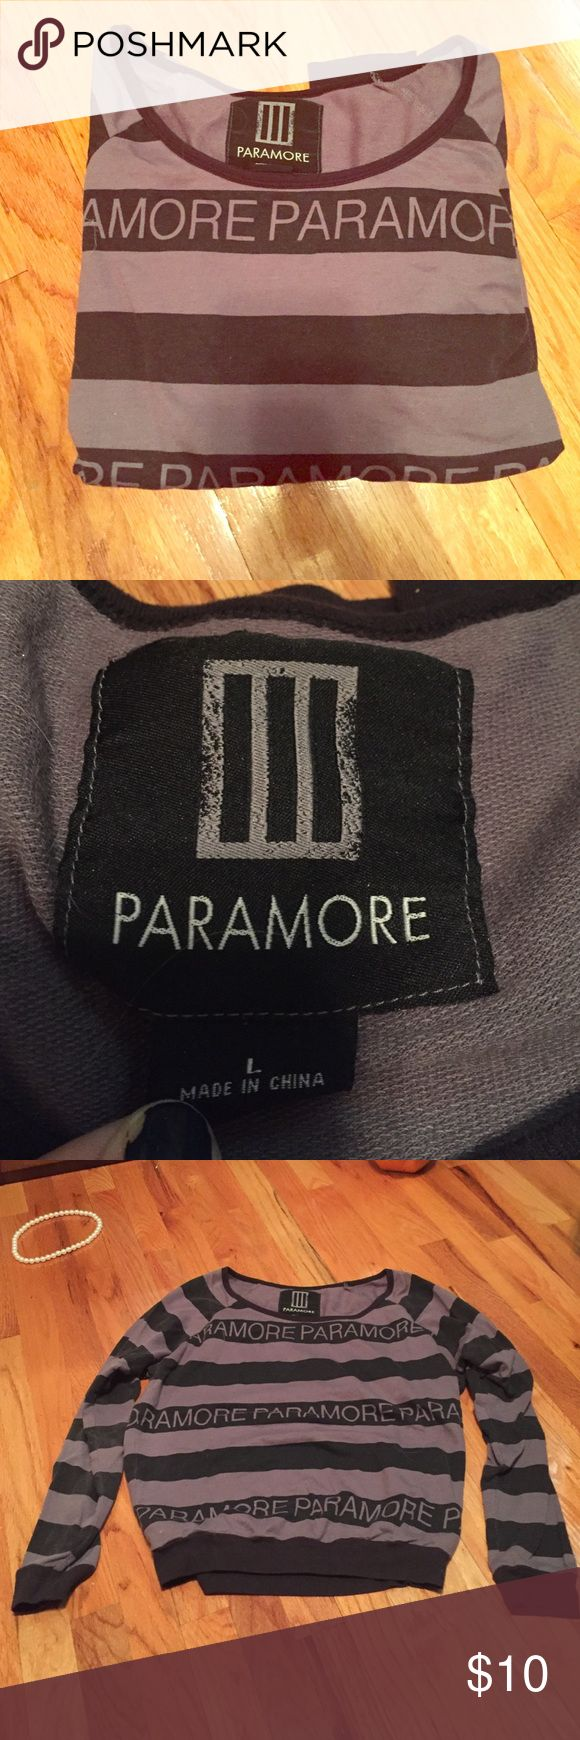 Hot Topic Paramore Pull over Sweater Size Large Hey guys! Here I have for a Paramore sweater from Hot Topic. It's been sitting in my closet for ages. It's really a great sweater. A very light material, good for Fall of Spring! It's a size large and fits accordingly! Hot Topic Sweaters Crew & Scoop Necks